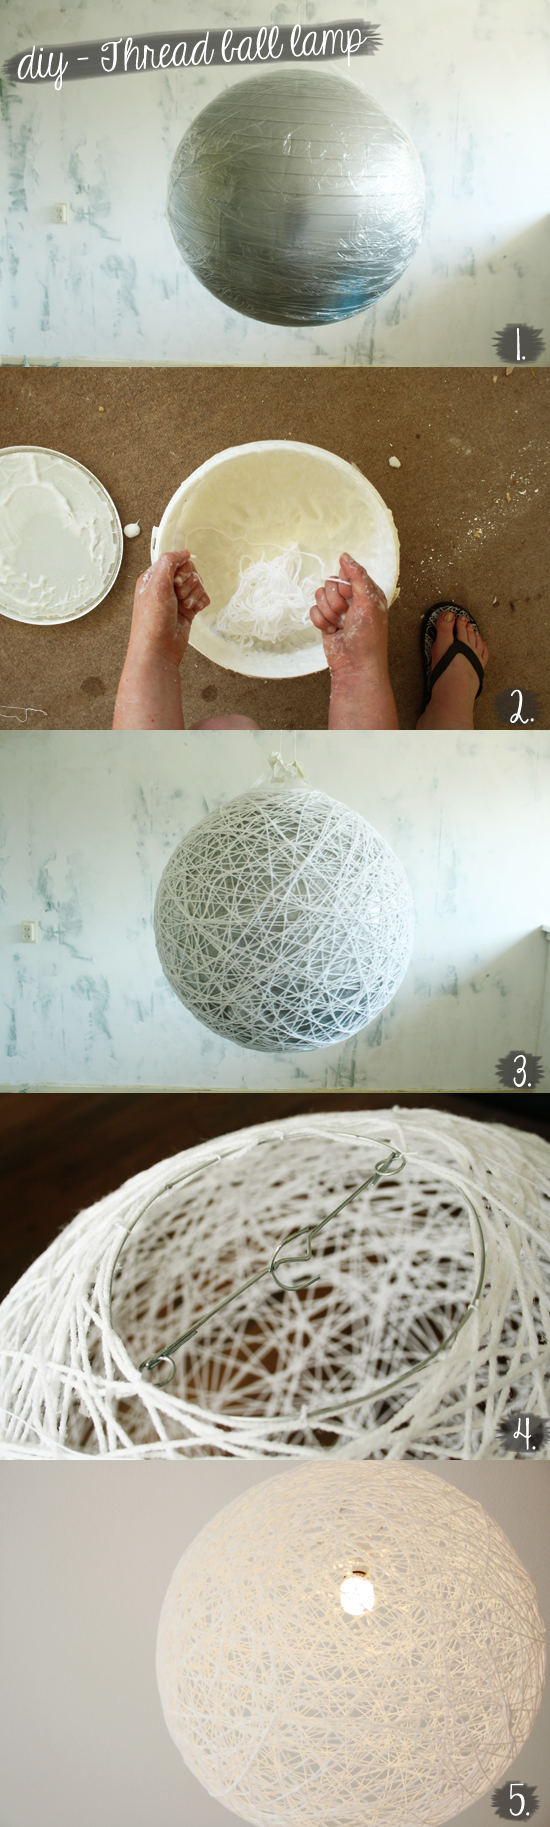 diy-thread-ball-lamp-how-to